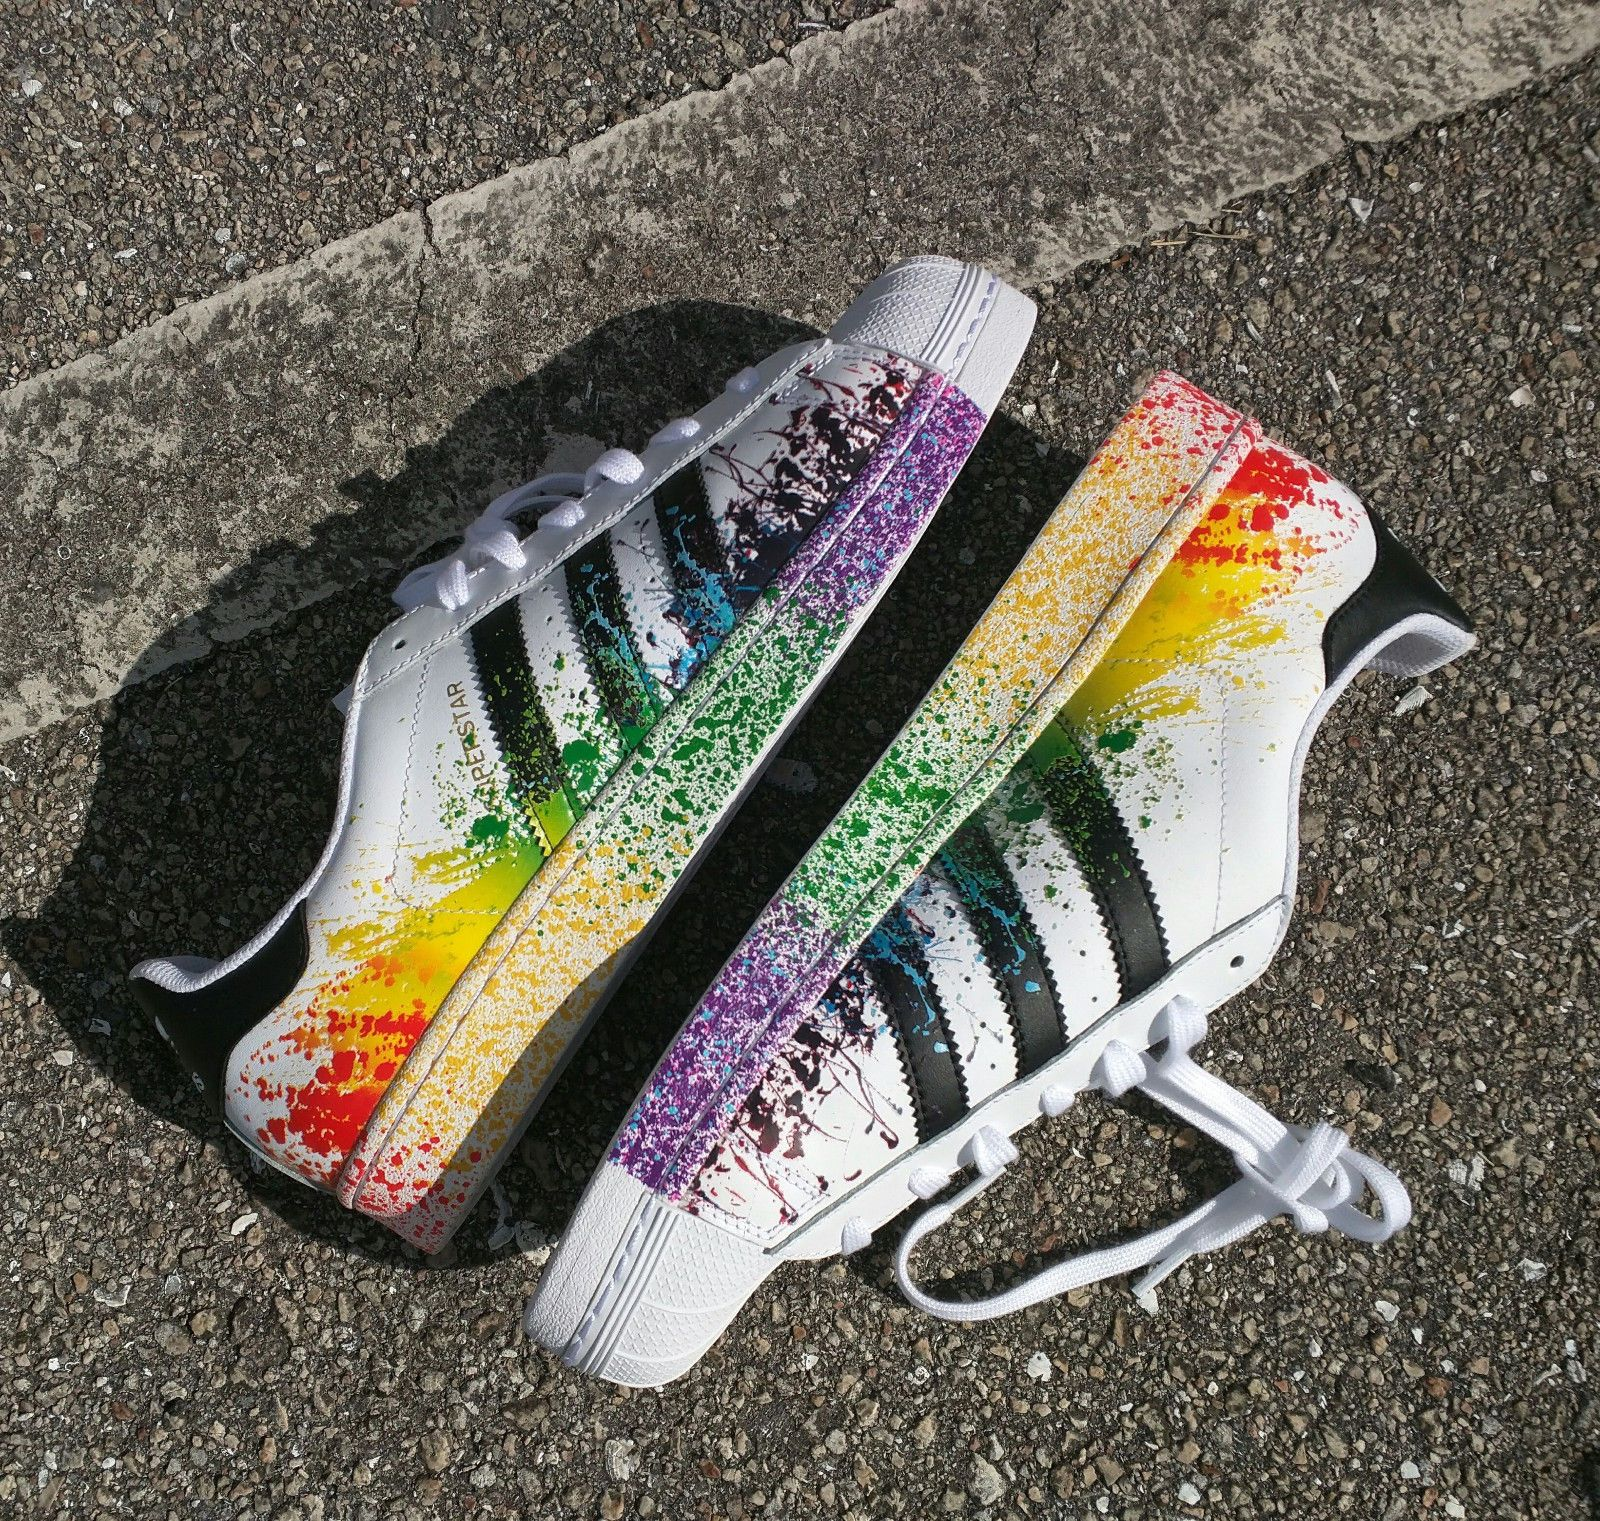 Adidas Originals SUPERSTAR Rainbow Paint Splatter White Black LGBT $259.00